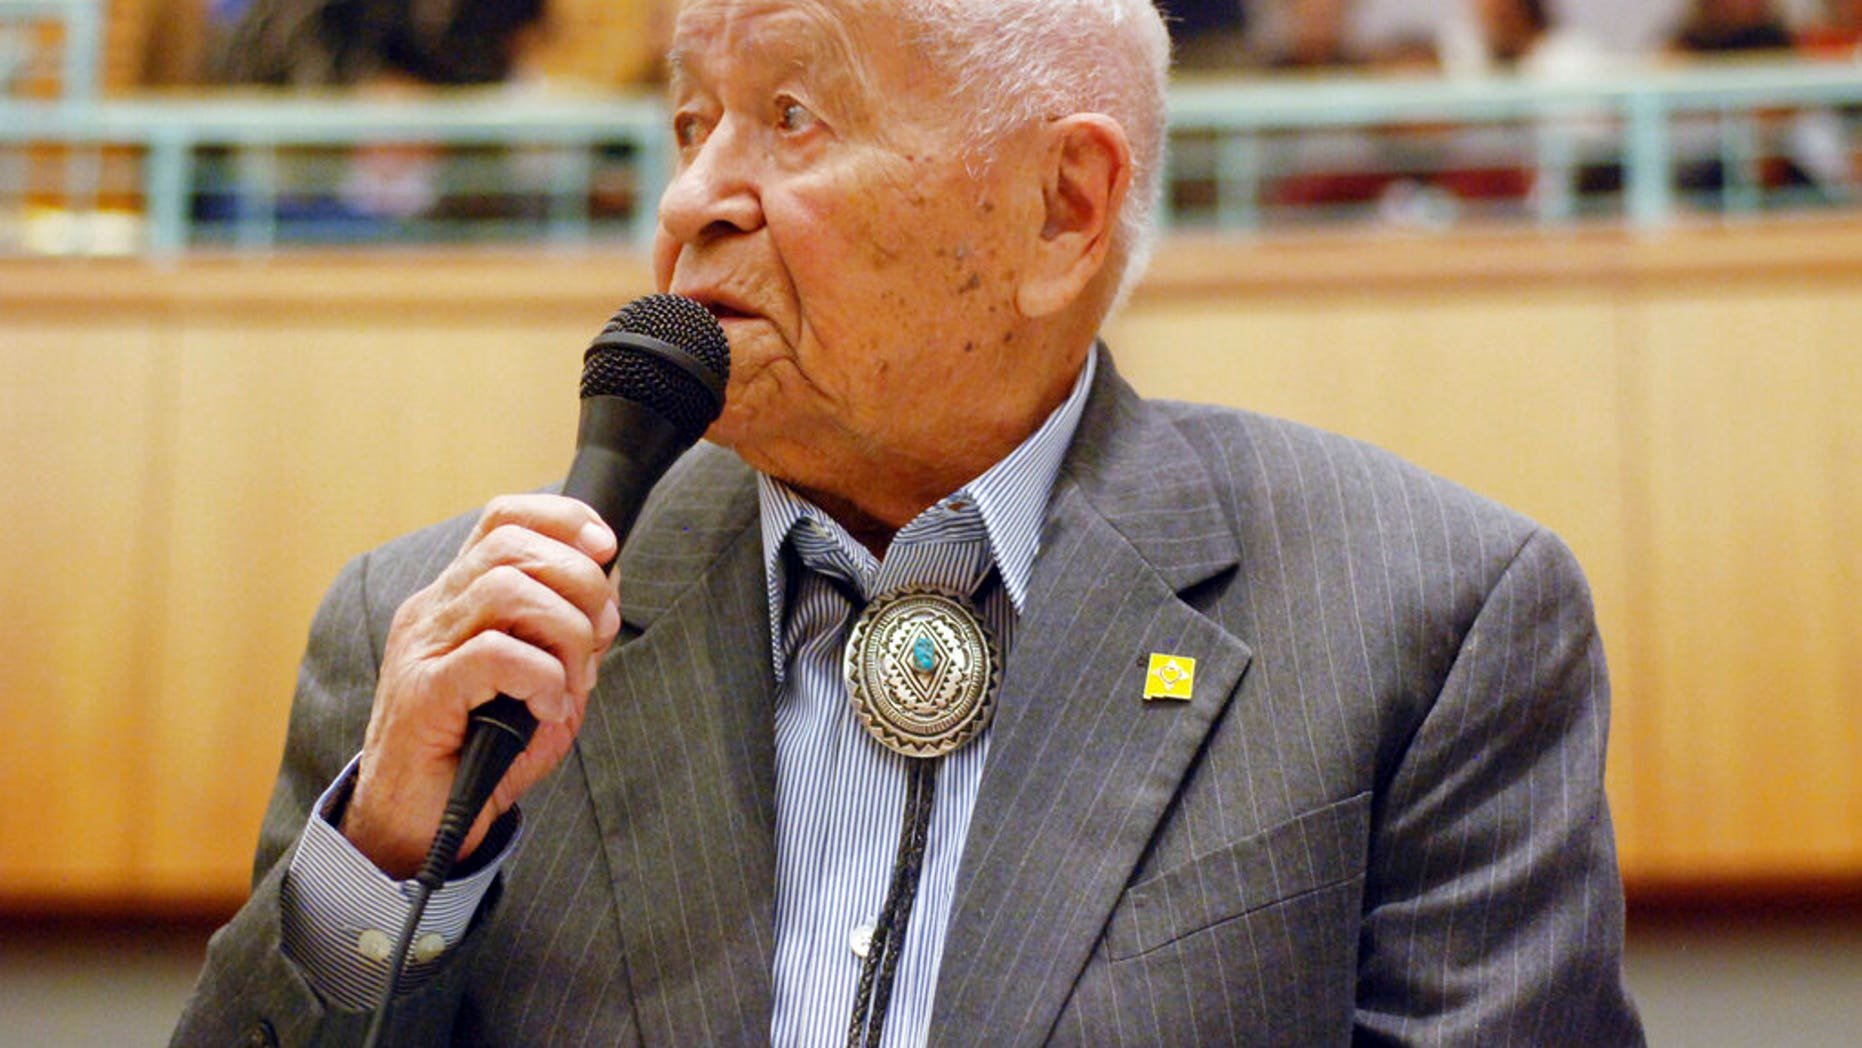 Democratic New Mexico state Sen. John Pinto talks about his career as a lawmaker on American Indian Day in the Legislature in Santa Fe, N.M., Feb. 2, 2018. (Associated Press)